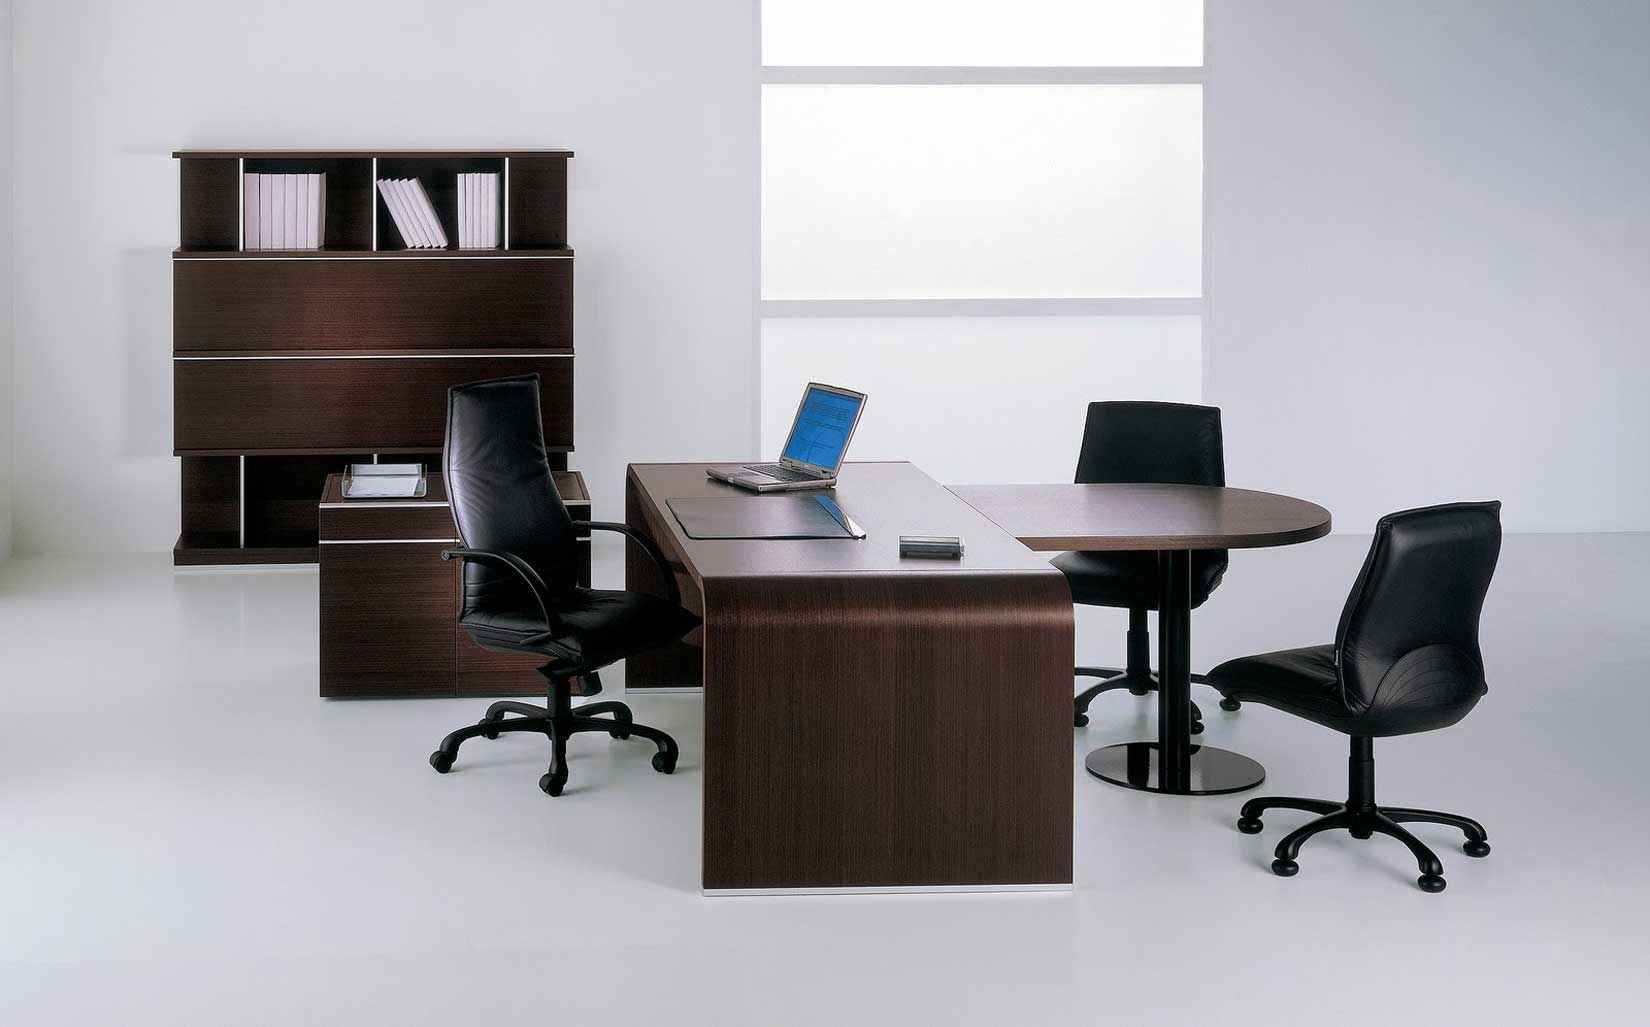 modern office furniture design   Google Search   Workplaces or Dream  Spaces    Pinterest   Office desks  Office furniture and Desks. modern office furniture design   Google Search   Workplaces or